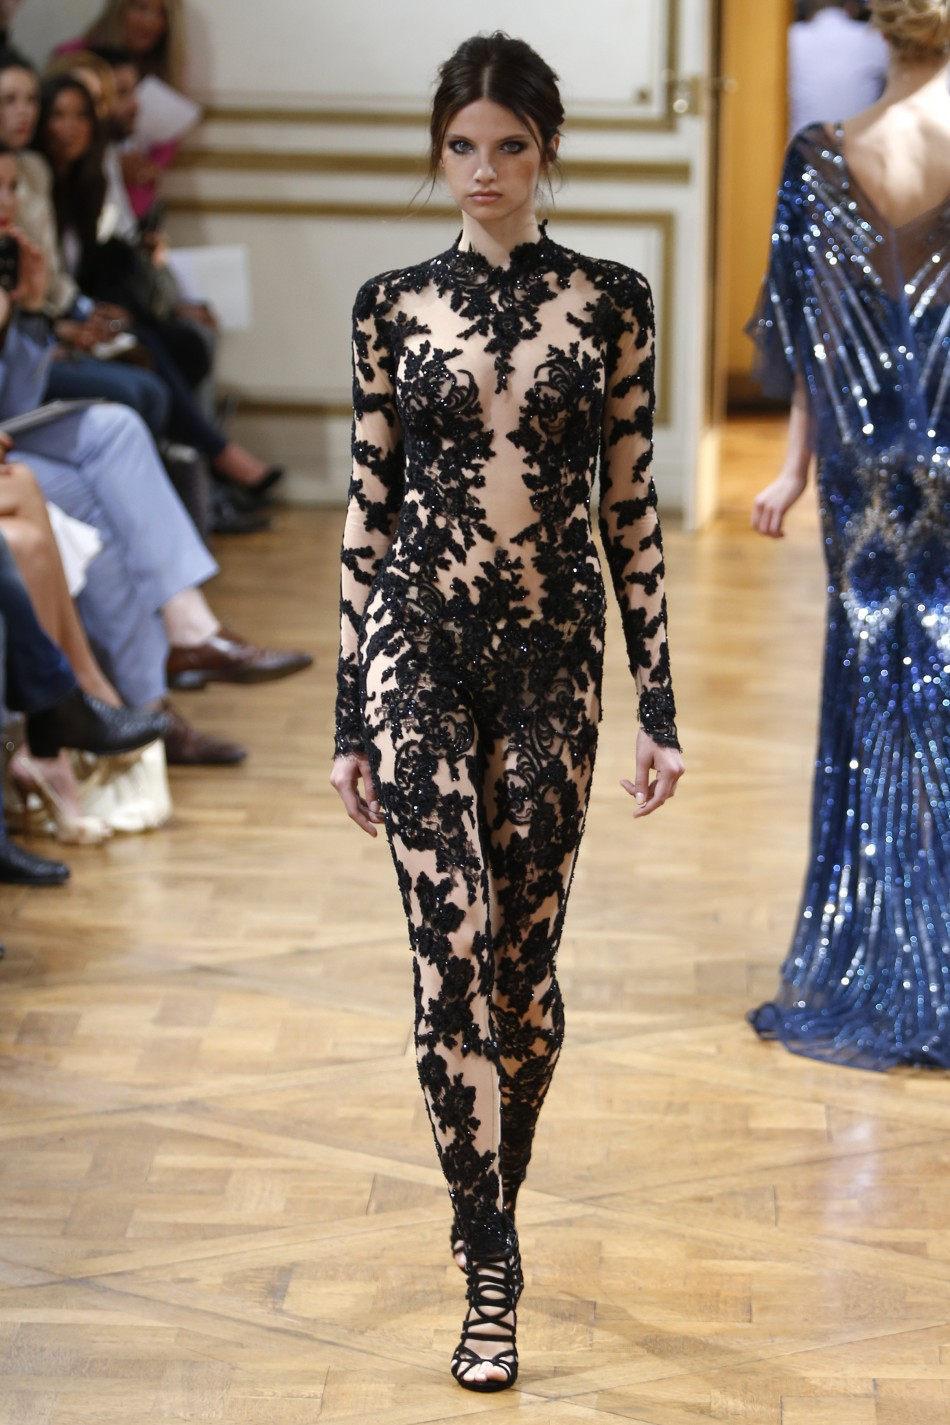 Model in a black lace-and-sequined Zuhair Murad Couture jumpsuit